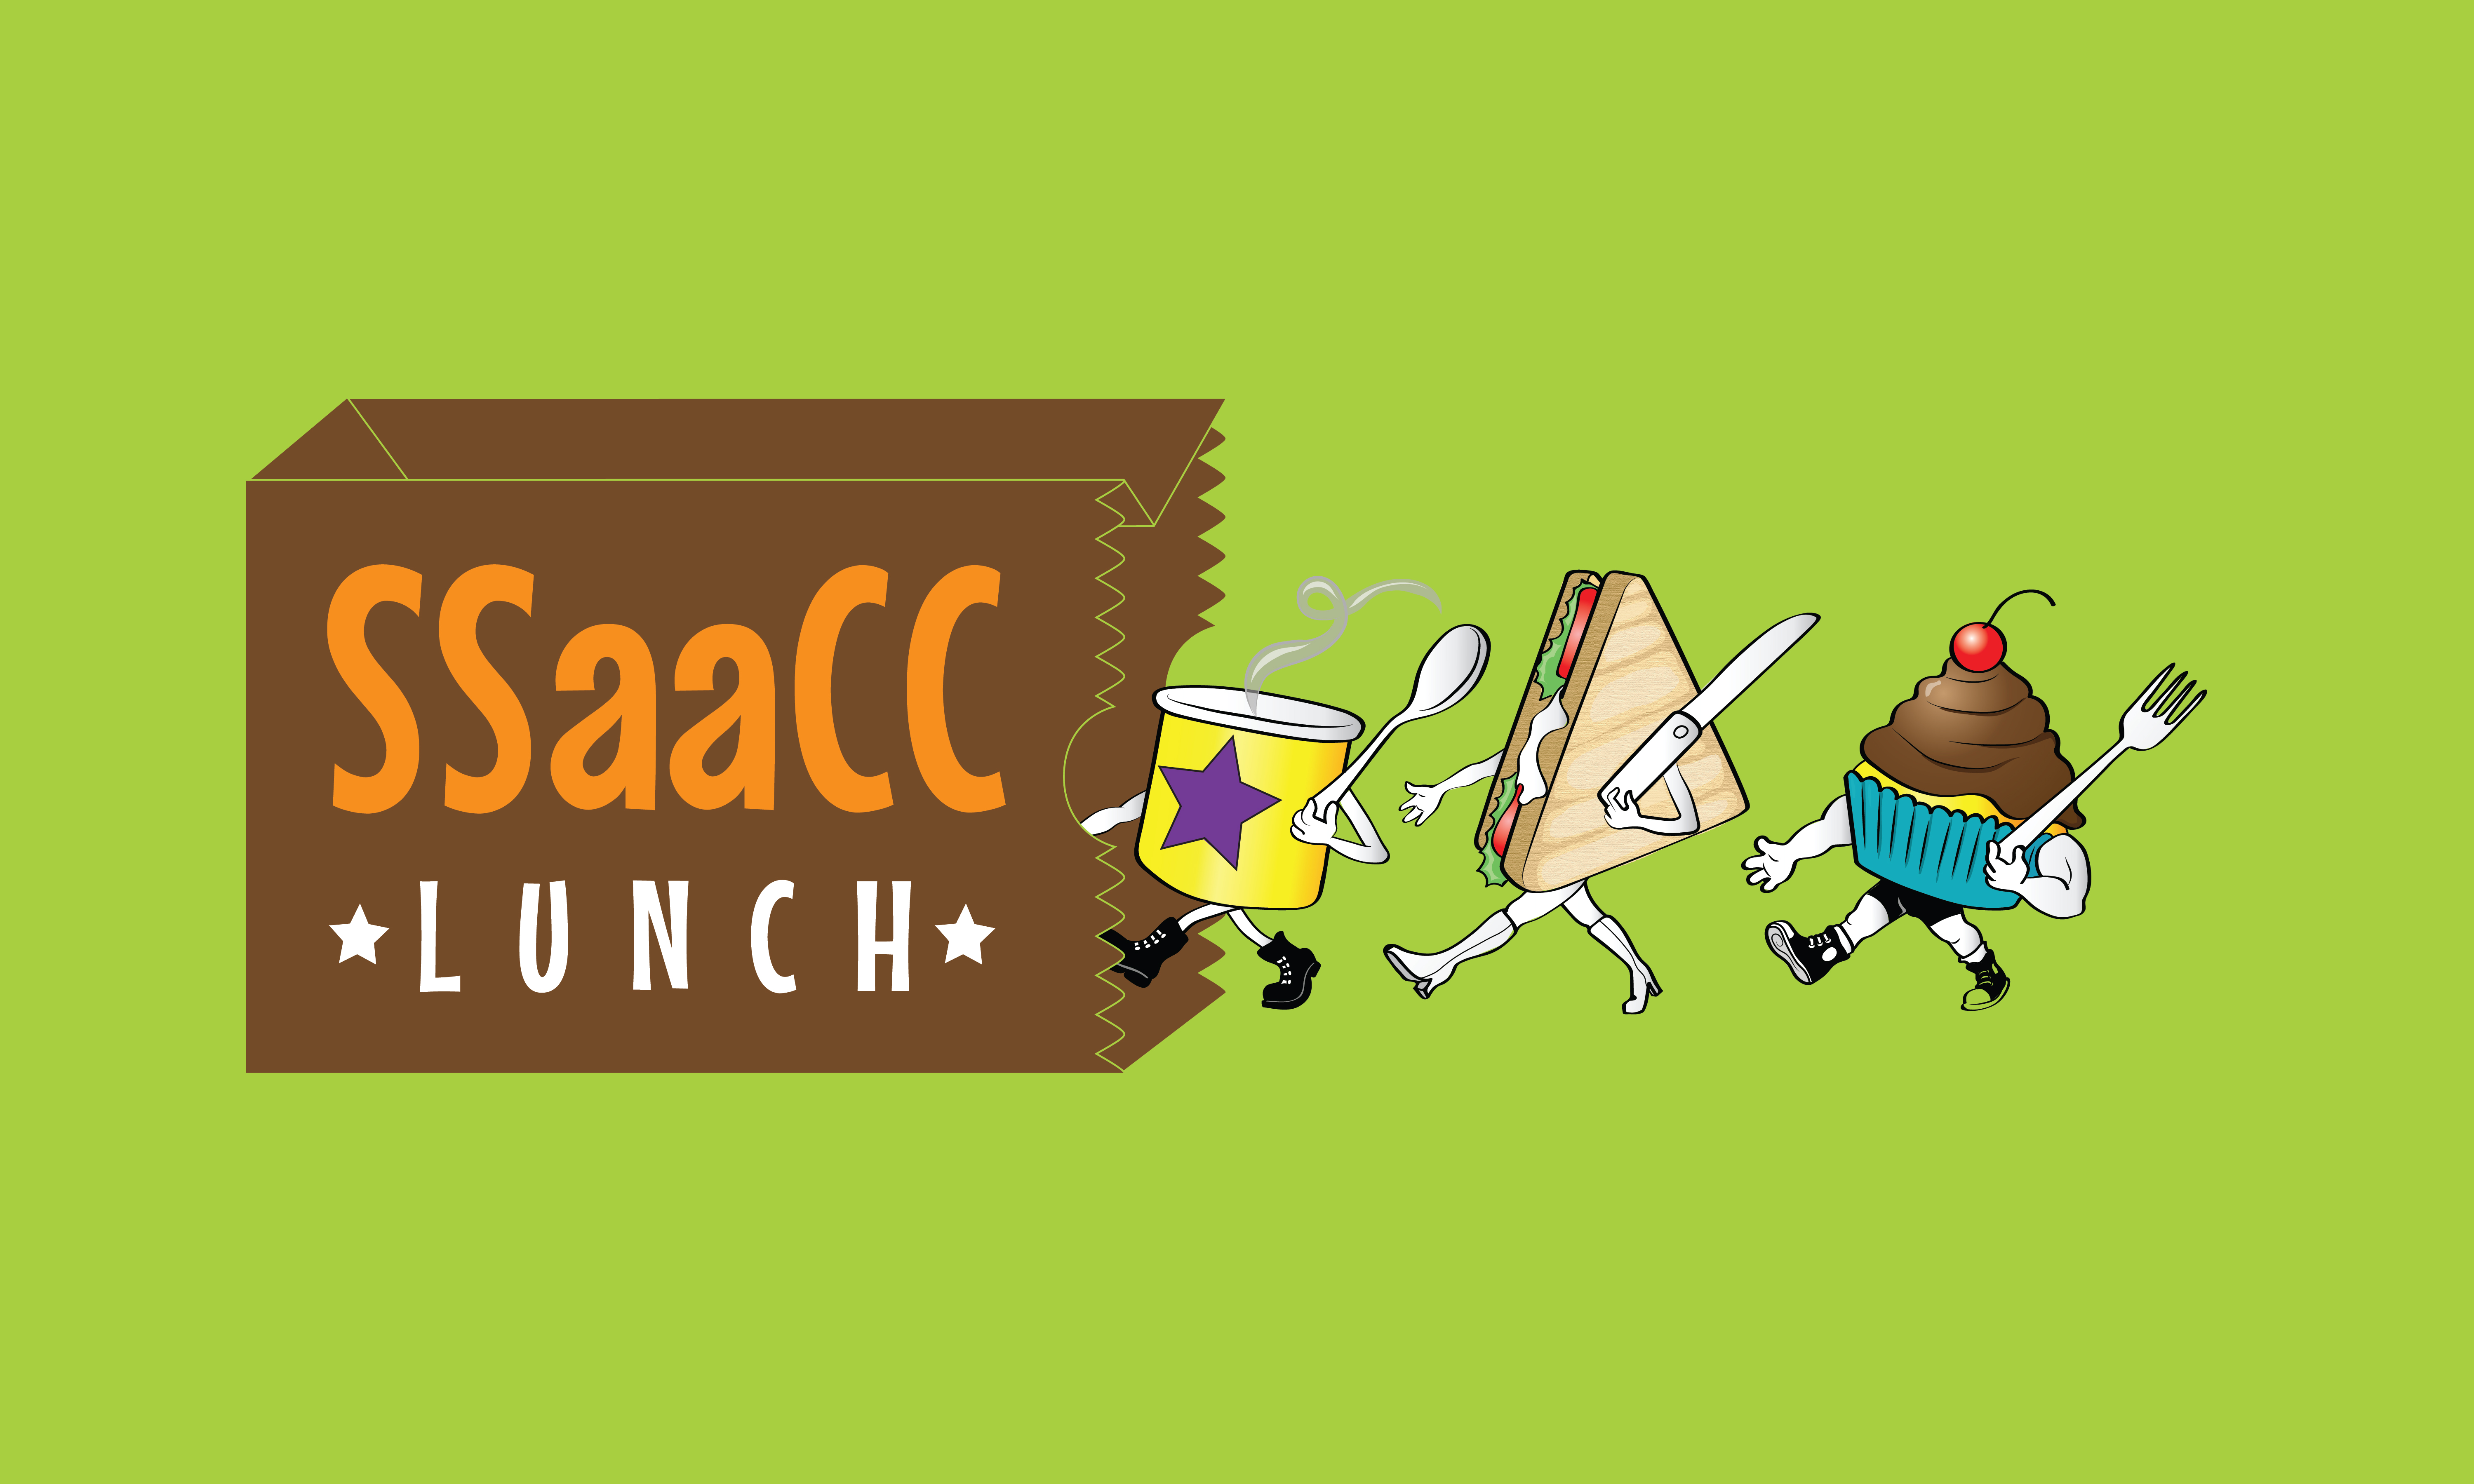 SSaaCC Lunch